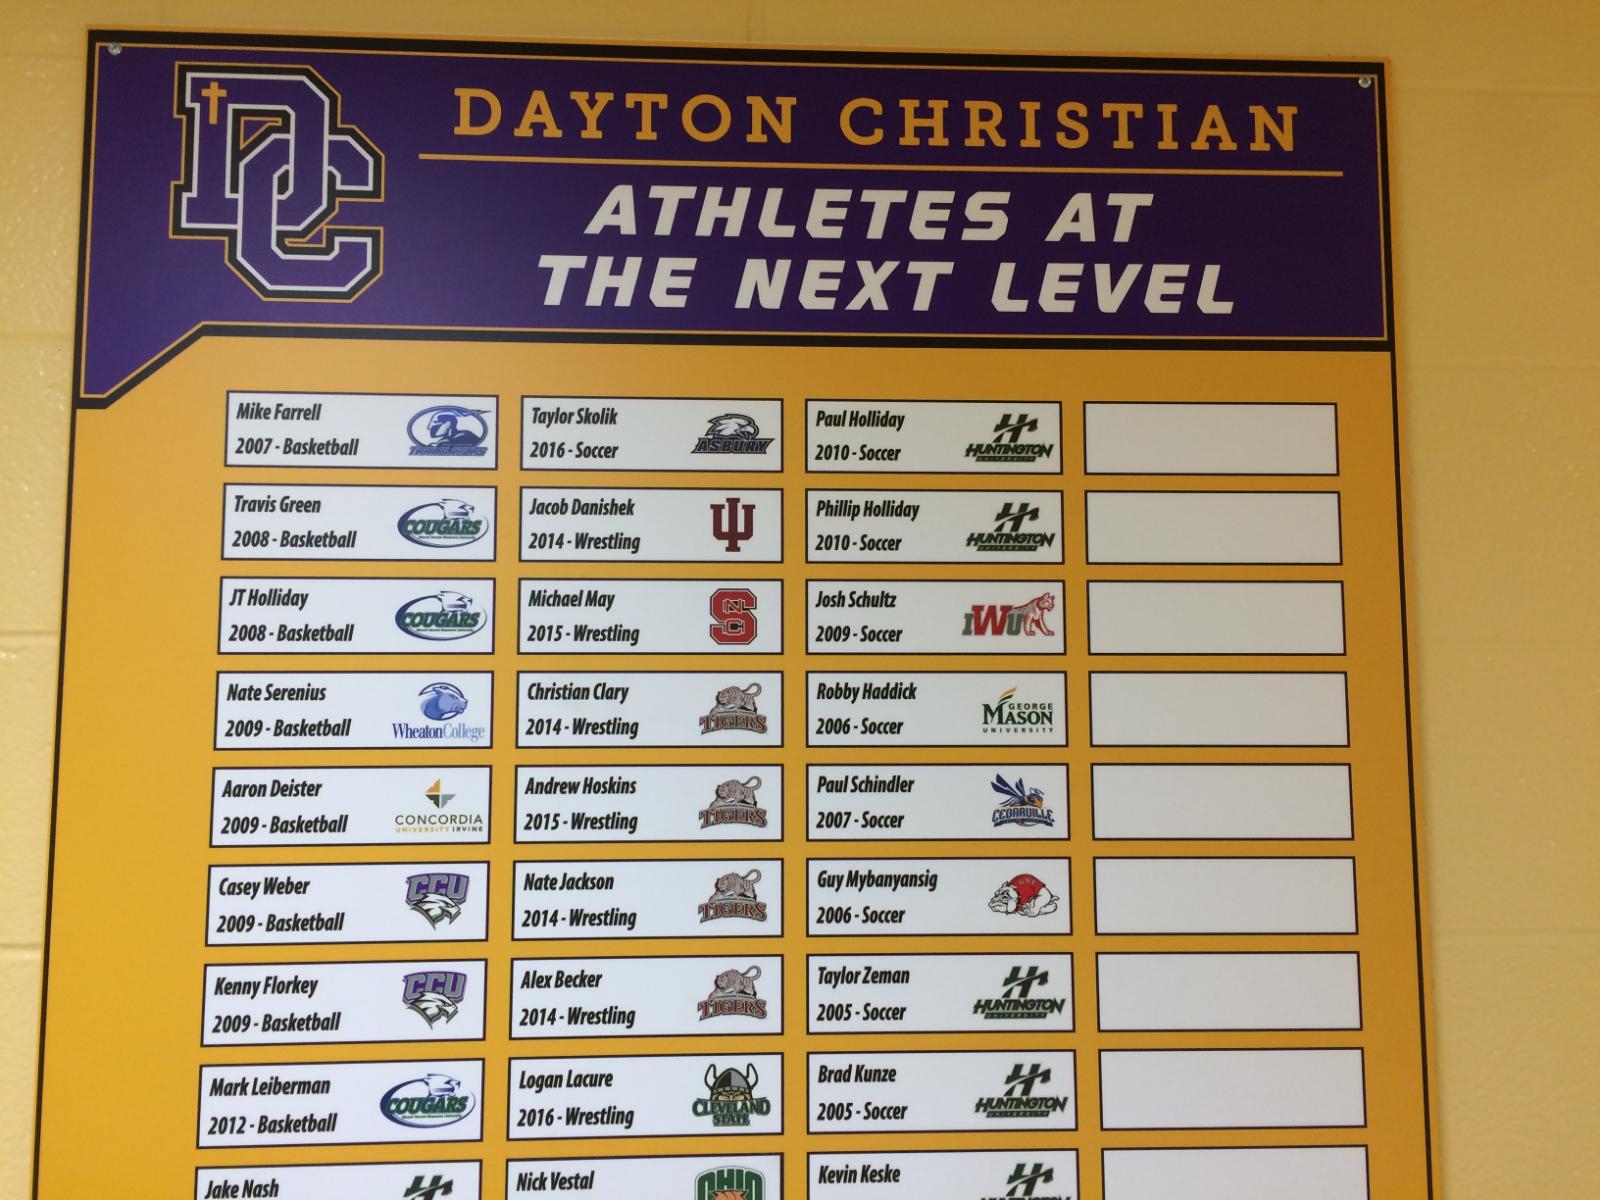 Dayton Christian Warriors at the Next Level